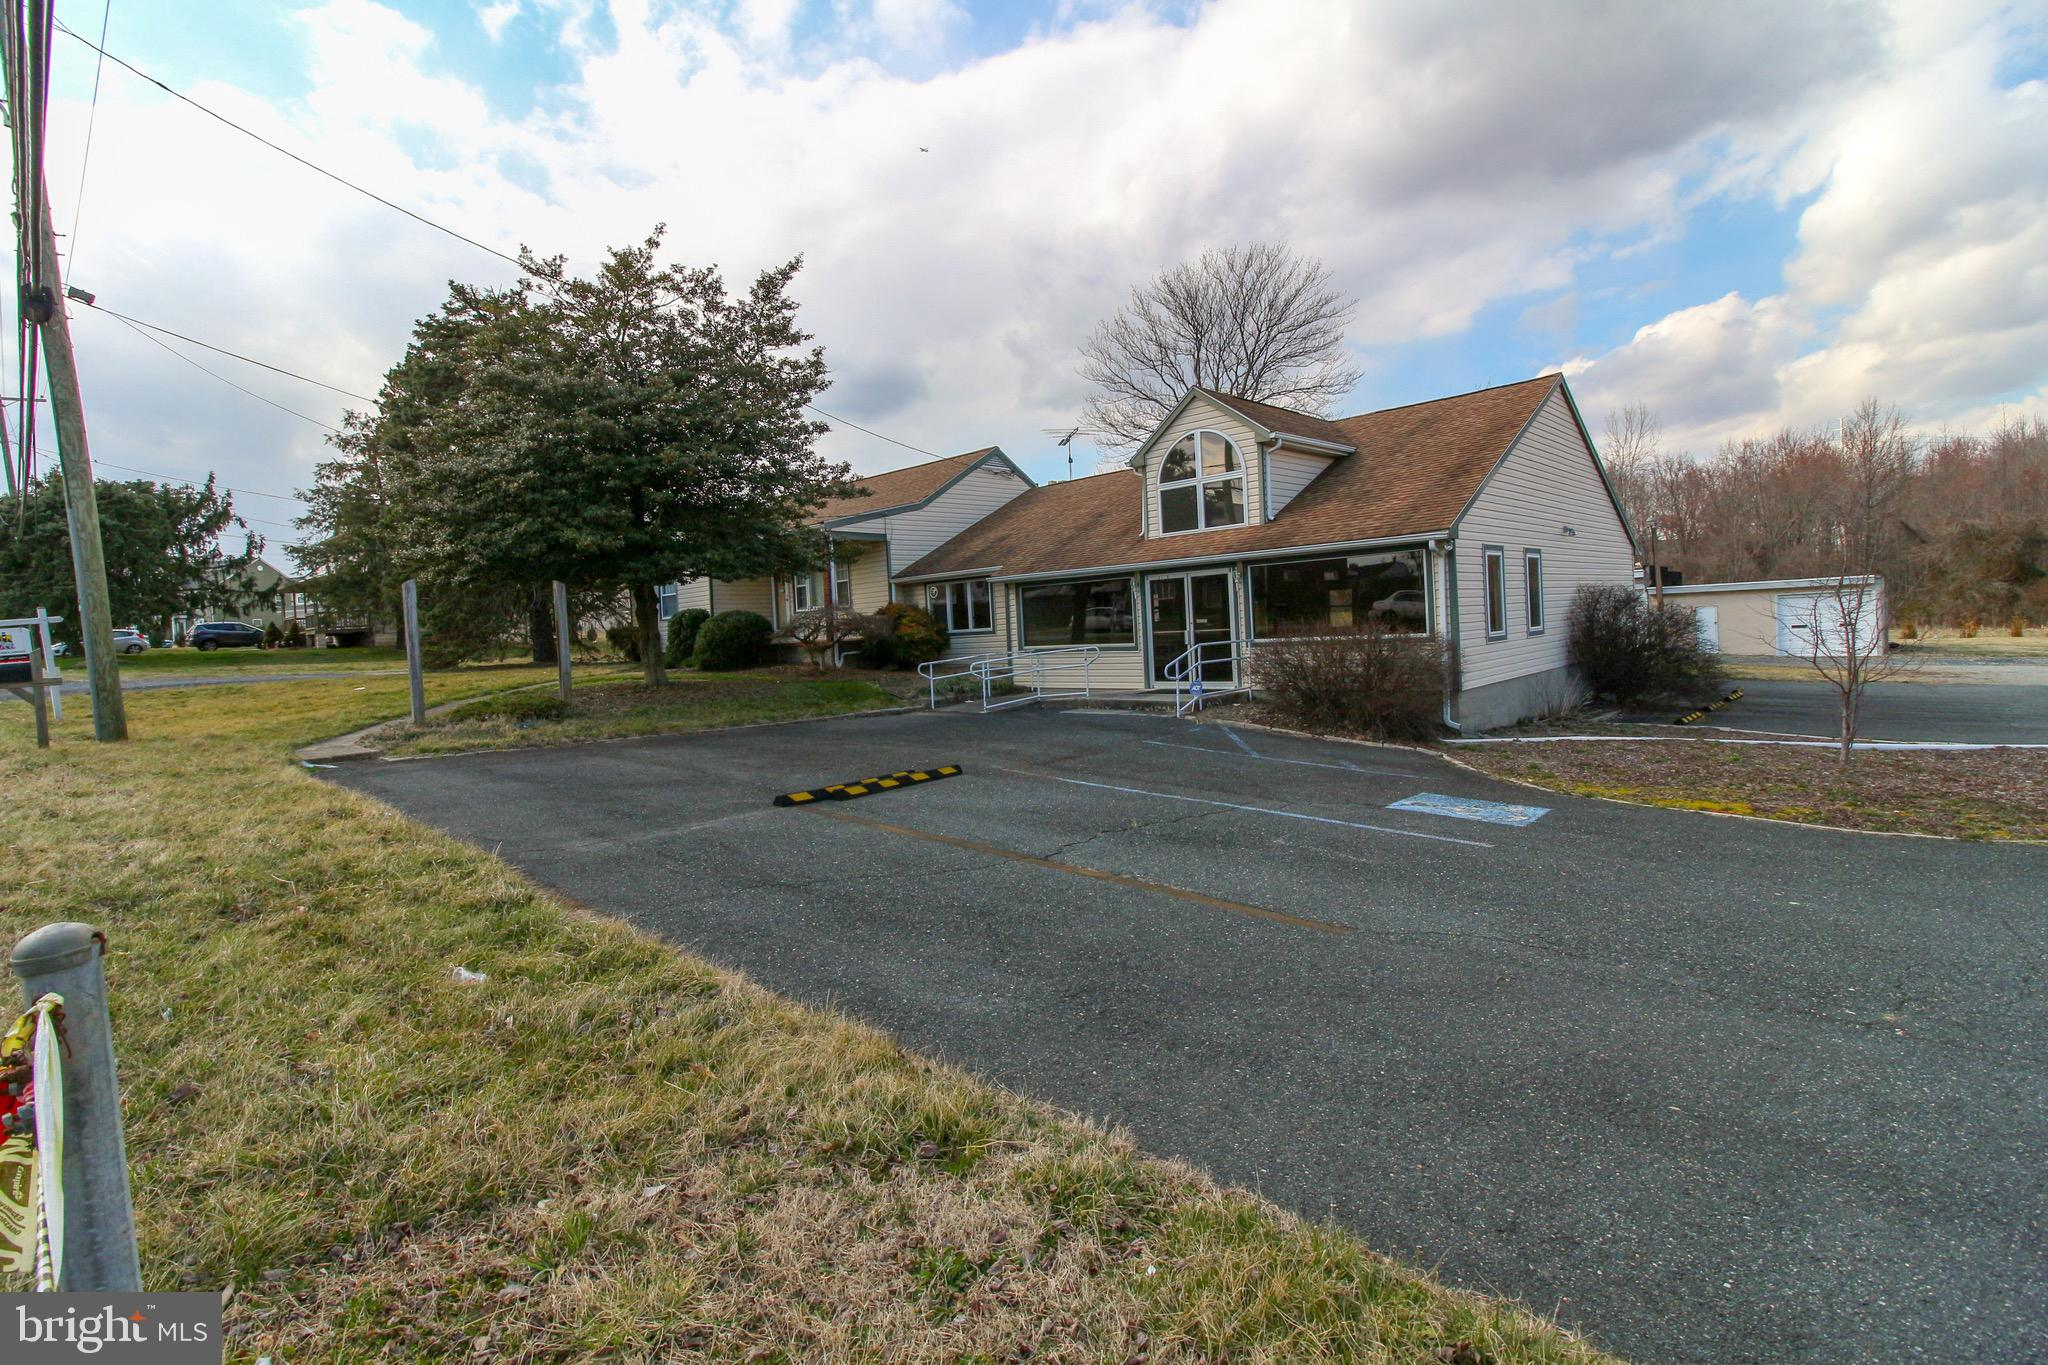 9750 BIRD RIVER ROAD, MIDDLE RIVER, MD 21220